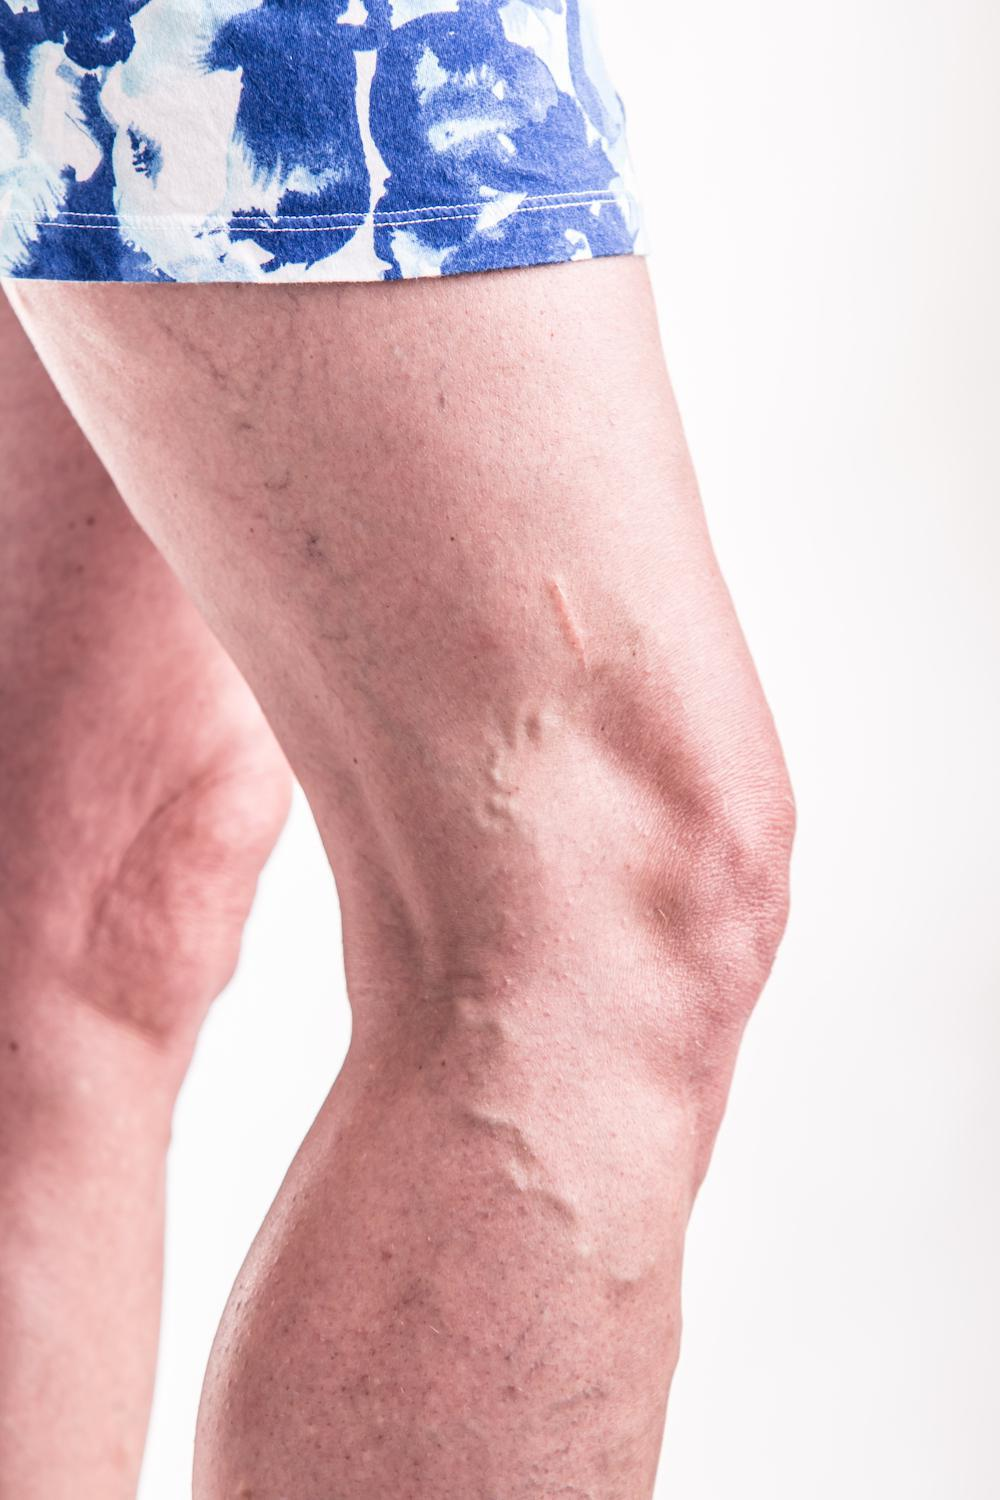 Are Your Varicose Veins Causing Leg Cramps? Don't Ignore